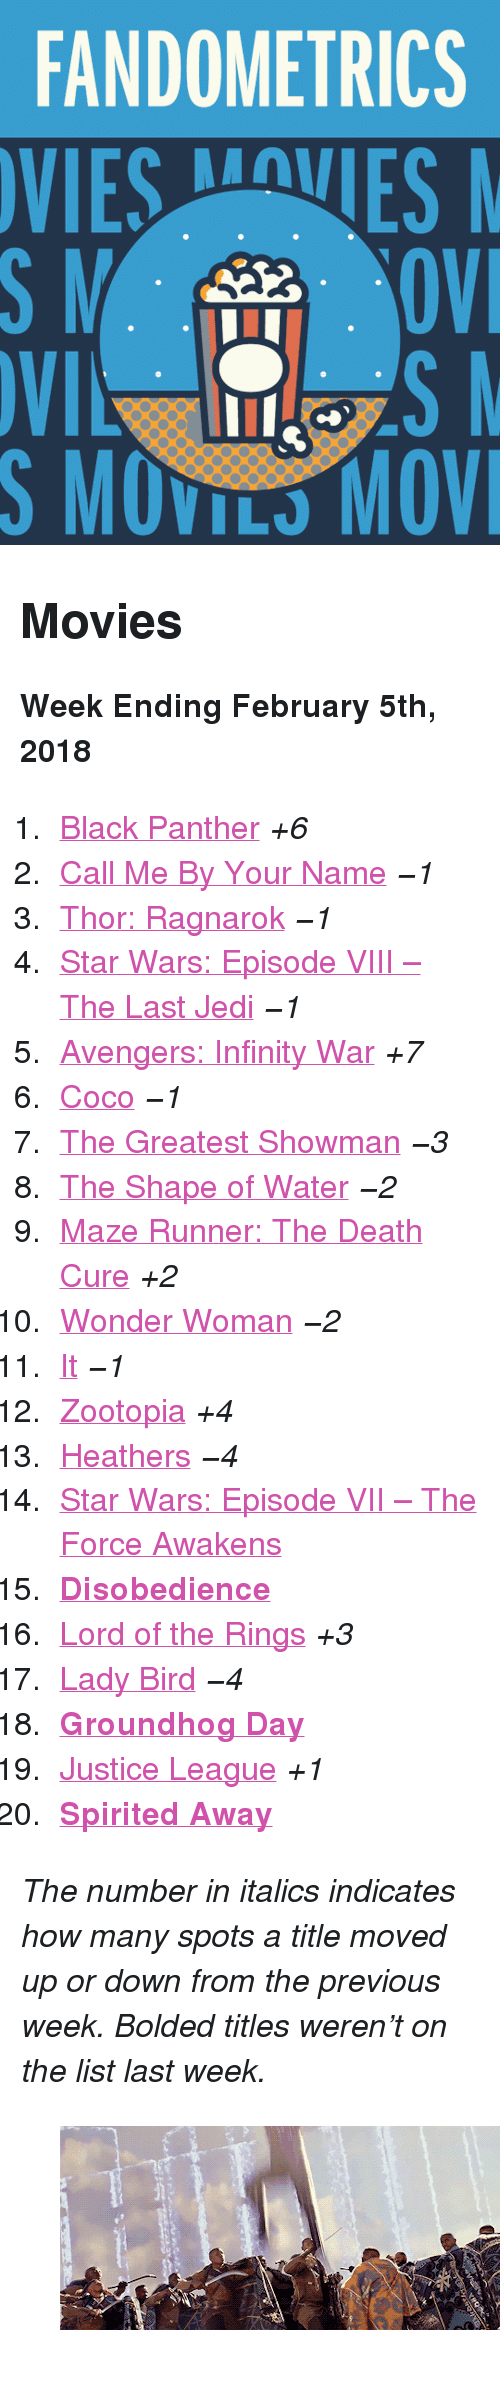 """maze: FANDOMETRICS  SMOVILS MOV <h2>Movies</h2><p><b>Week Ending February 5th, 2018</b></p><ol><li><a href=""""http://www.tumblr.com/search/black%20panther"""">Black Panther</a><i>+6</i></li>  <li><a href=""""http://www.tumblr.com/search/call%20me%20by%20your%20name"""">Call Me By Your Name</a><i><i>−1</i></i></li>  <li><a href=""""http://www.tumblr.com/search/thor%20ragnarok"""">Thor: Ragnarok</a><i><i>−1</i></i></li>  <li><a href=""""http://www.tumblr.com/search/the%20last%20jedi"""">Star Wars: Episode VIII – The Last Jedi</a><i><i>−1</i></i></li>  <li><a href=""""http://www.tumblr.com/search/infinity%20war"""">Avengers: Infinity War</a><i>+7</i></li>  <li><a href=""""http://www.tumblr.com/search/coco"""">Coco</a><i><i>−1</i></i></li>  <li><a href=""""http://www.tumblr.com/search/the%20greatest%20showman"""">The Greatest Showman</a><i><i>−3</i></i></li>  <li><a href=""""http://www.tumblr.com/search/the%20shape%20of%20water"""">The Shape of Water</a><i><i>−2</i></i></li>  <li><a href=""""http://www.tumblr.com/search/the%20maze%20runner"""">Maze Runner: The Death Cure</a><i>+2</i></li>  <li><a href=""""http://www.tumblr.com/search/wonder%20woman"""">Wonder Woman</a><i><i>−2</i></i></li>  <li><a href=""""http://www.tumblr.com/search/it%202017"""">It</a><i><i>−1</i></i></li>  <li><a href=""""http://www.tumblr.com/search/zootopia"""">Zootopia</a><i>+4</i></li>  <li><a href=""""http://www.tumblr.com/search/heathers"""">Heathers</a><i><i>−4</i></i></li>  <li><a href=""""http://www.tumblr.com/search/the%20force%20awakens"""">Star Wars: Episode VII – The Force Awakens</a></li>  <li><a href=""""http://www.tumblr.com/search/disobedience""""><b>Disobedience</b></a></li>  <li><a href=""""http://www.tumblr.com/search/lotr"""">Lord of the Rings</a><i>+3</i></li>  <li><a href=""""http://www.tumblr.com/search/lady%20bird"""">Lady Bird</a><i><i>−4</i></i></li>  <li><a href=""""http://www.tumblr.com/search/groundhog%20day""""><b>Groundhog Day</b></a></li>  <li><a href=""""http://www.tumblr.com/search/justice%20league"""">Justice League</a><i>+1</i></li>  <li><a href=""""http://www.tumblr.com/searc"""